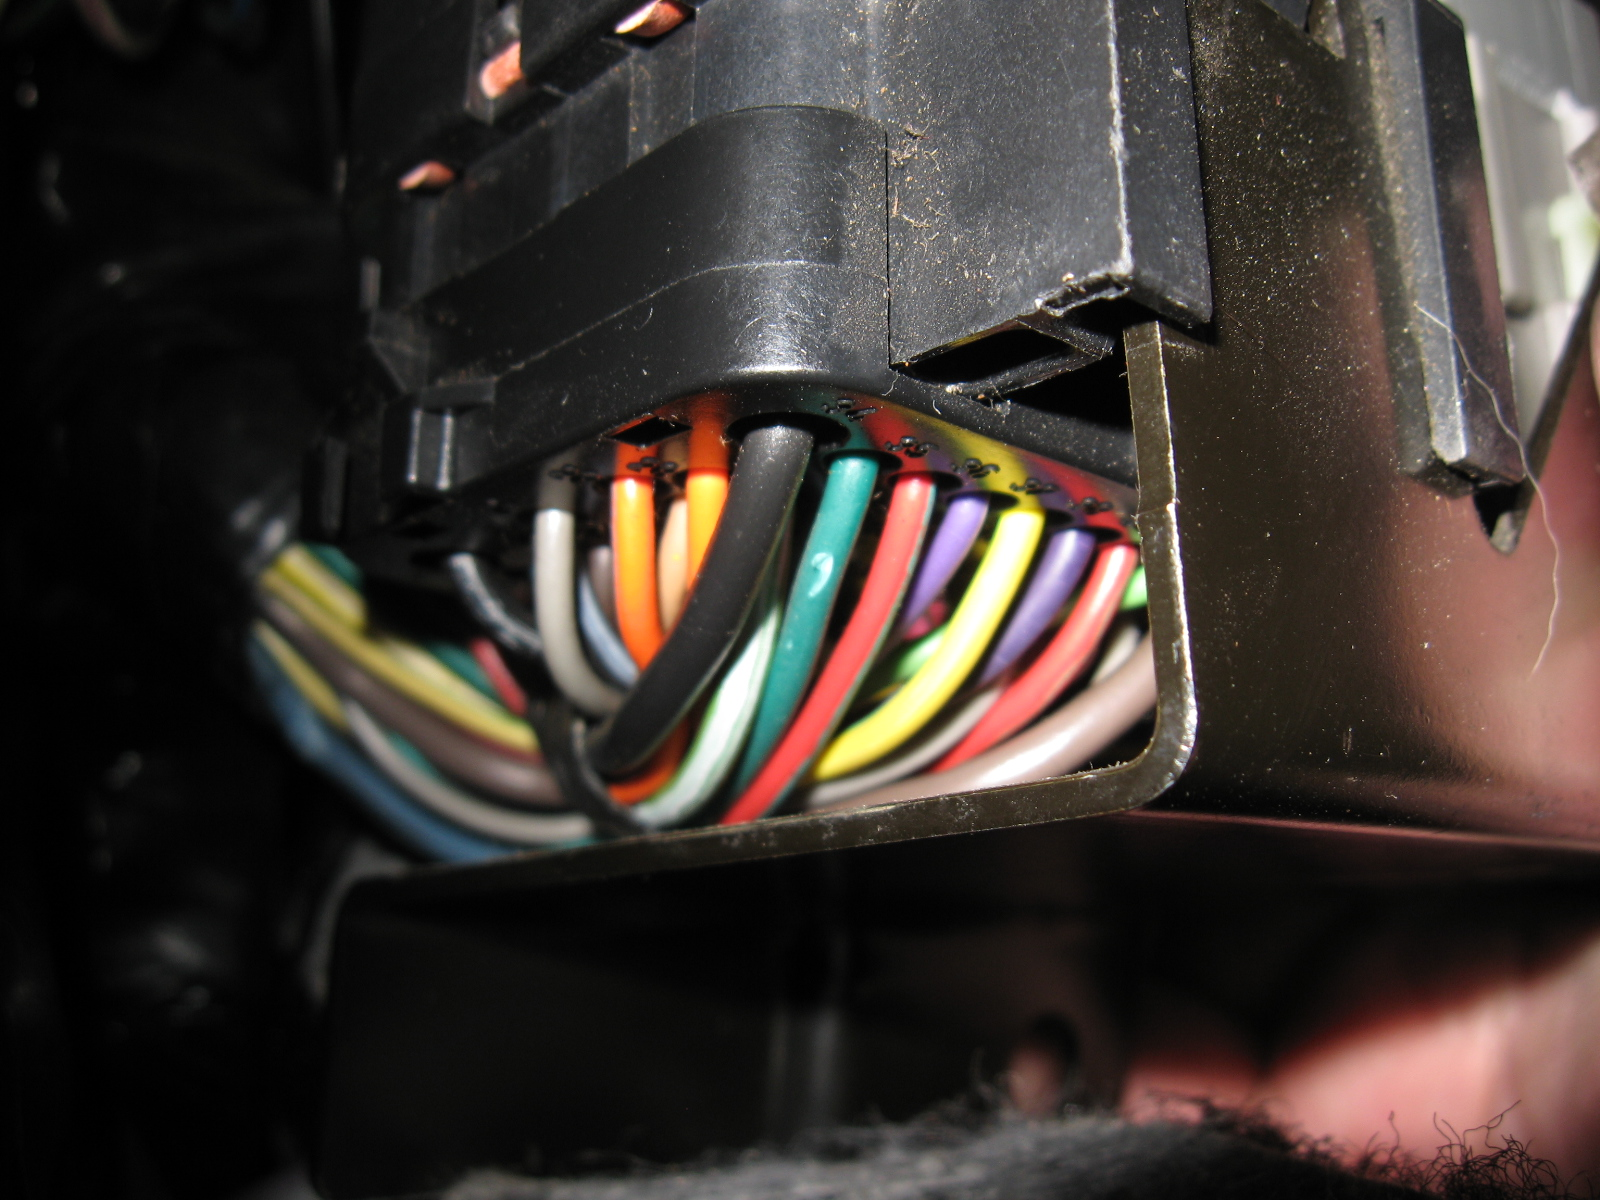 Mustang 1994 1995 Export Taillight Installation Wiring Distribution Block This Photo Is From The Back Ofthe Bracket Its Mounted On Clearly Visible There Are Two Red Wires At Of Hte